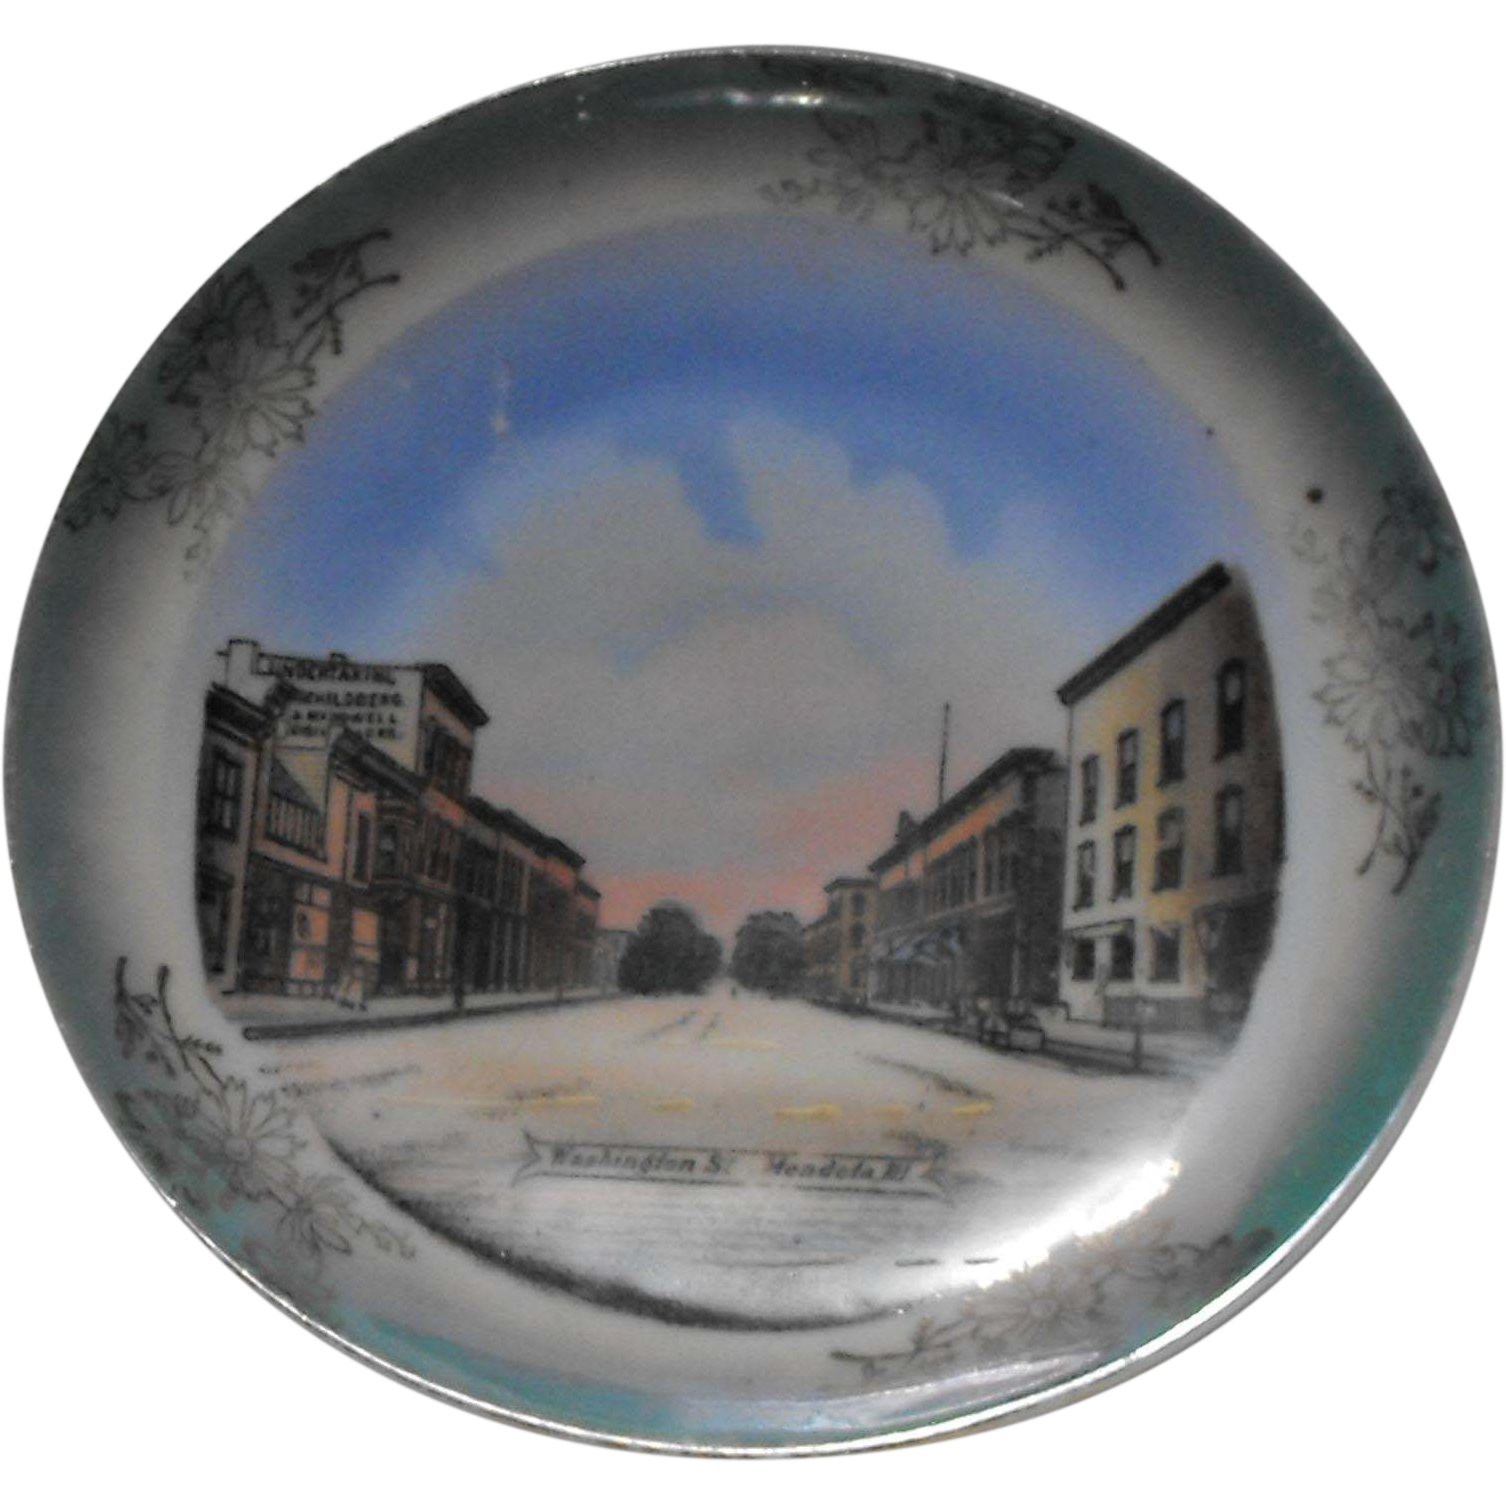 Jonroth Studios Porcelain Souvenir China Plate Washington Street, Mendotta Illinois